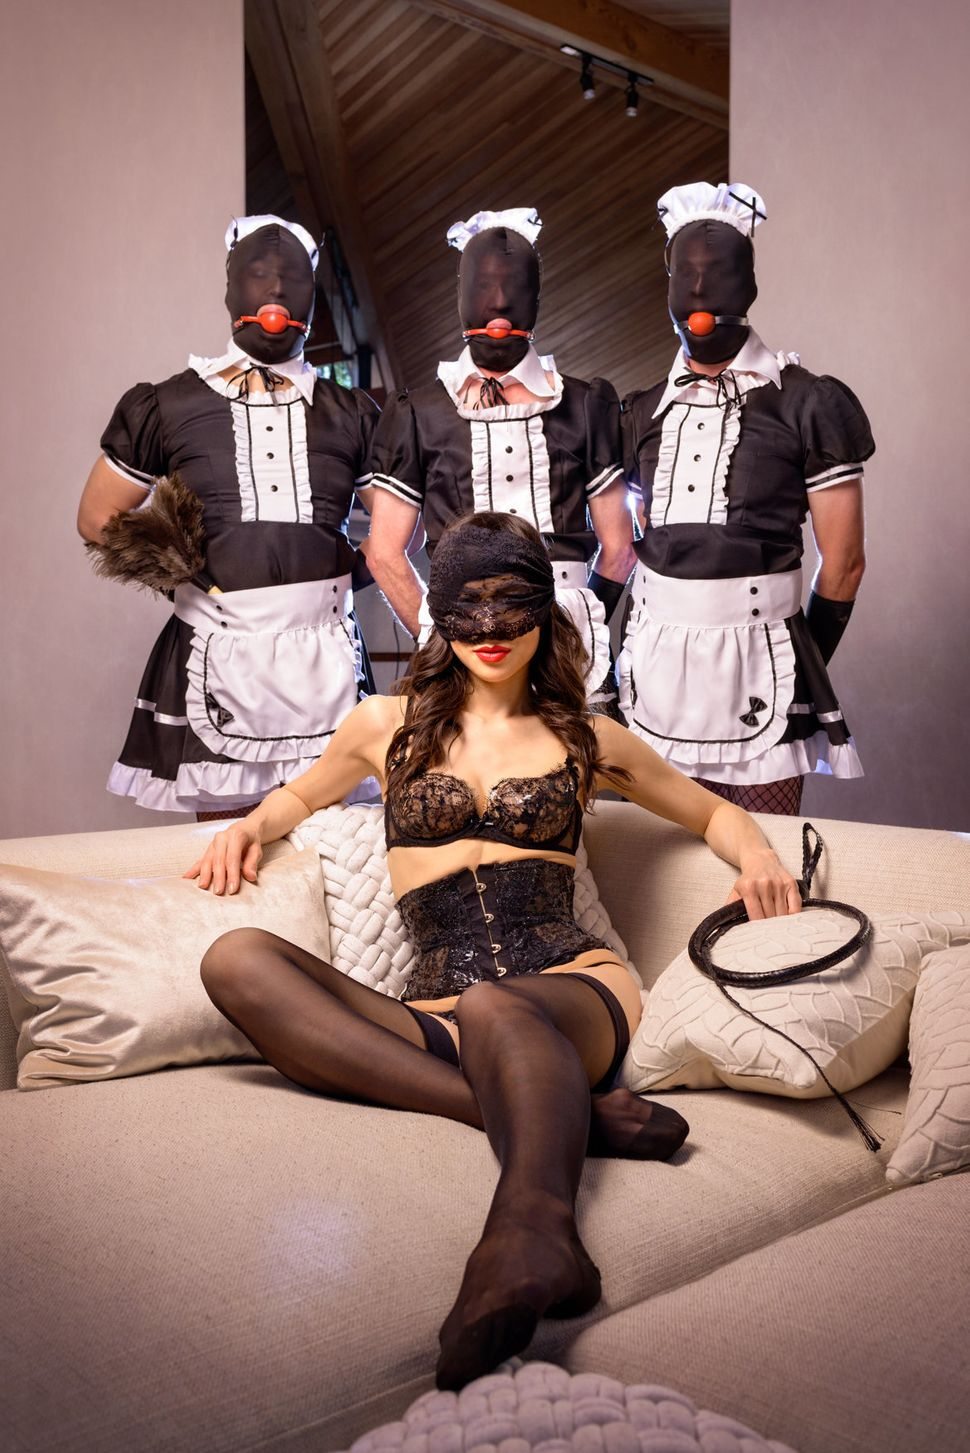 Colette, or Domina Colette, has been a professional dominatrix for the past 13 years.